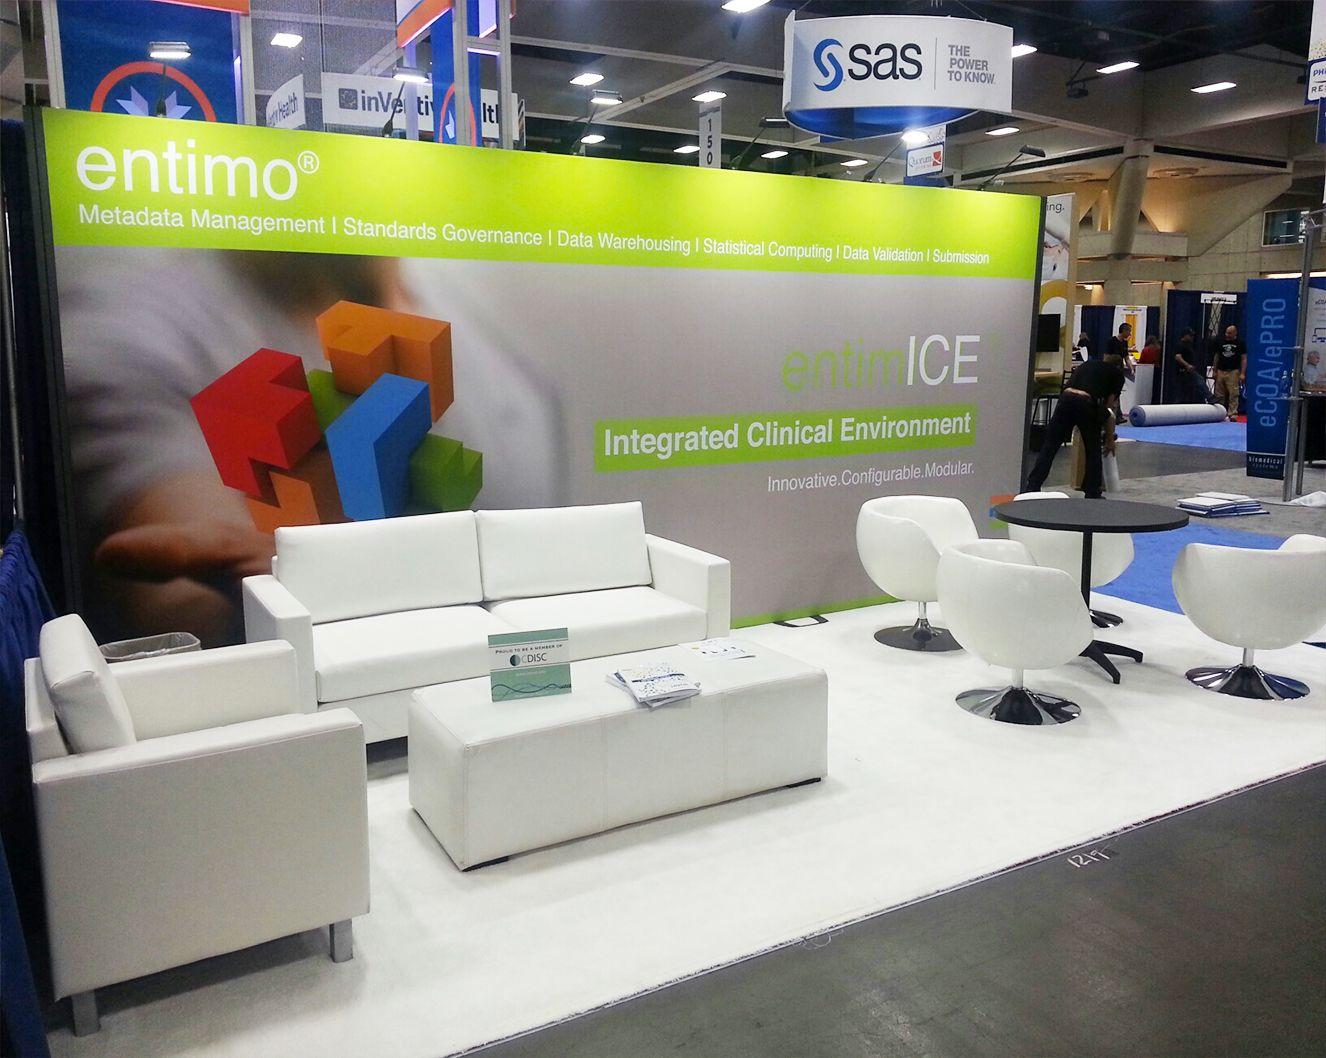 Exhibition Booth For Rental Sia : Modular trade show rental booth for entimo ag dia